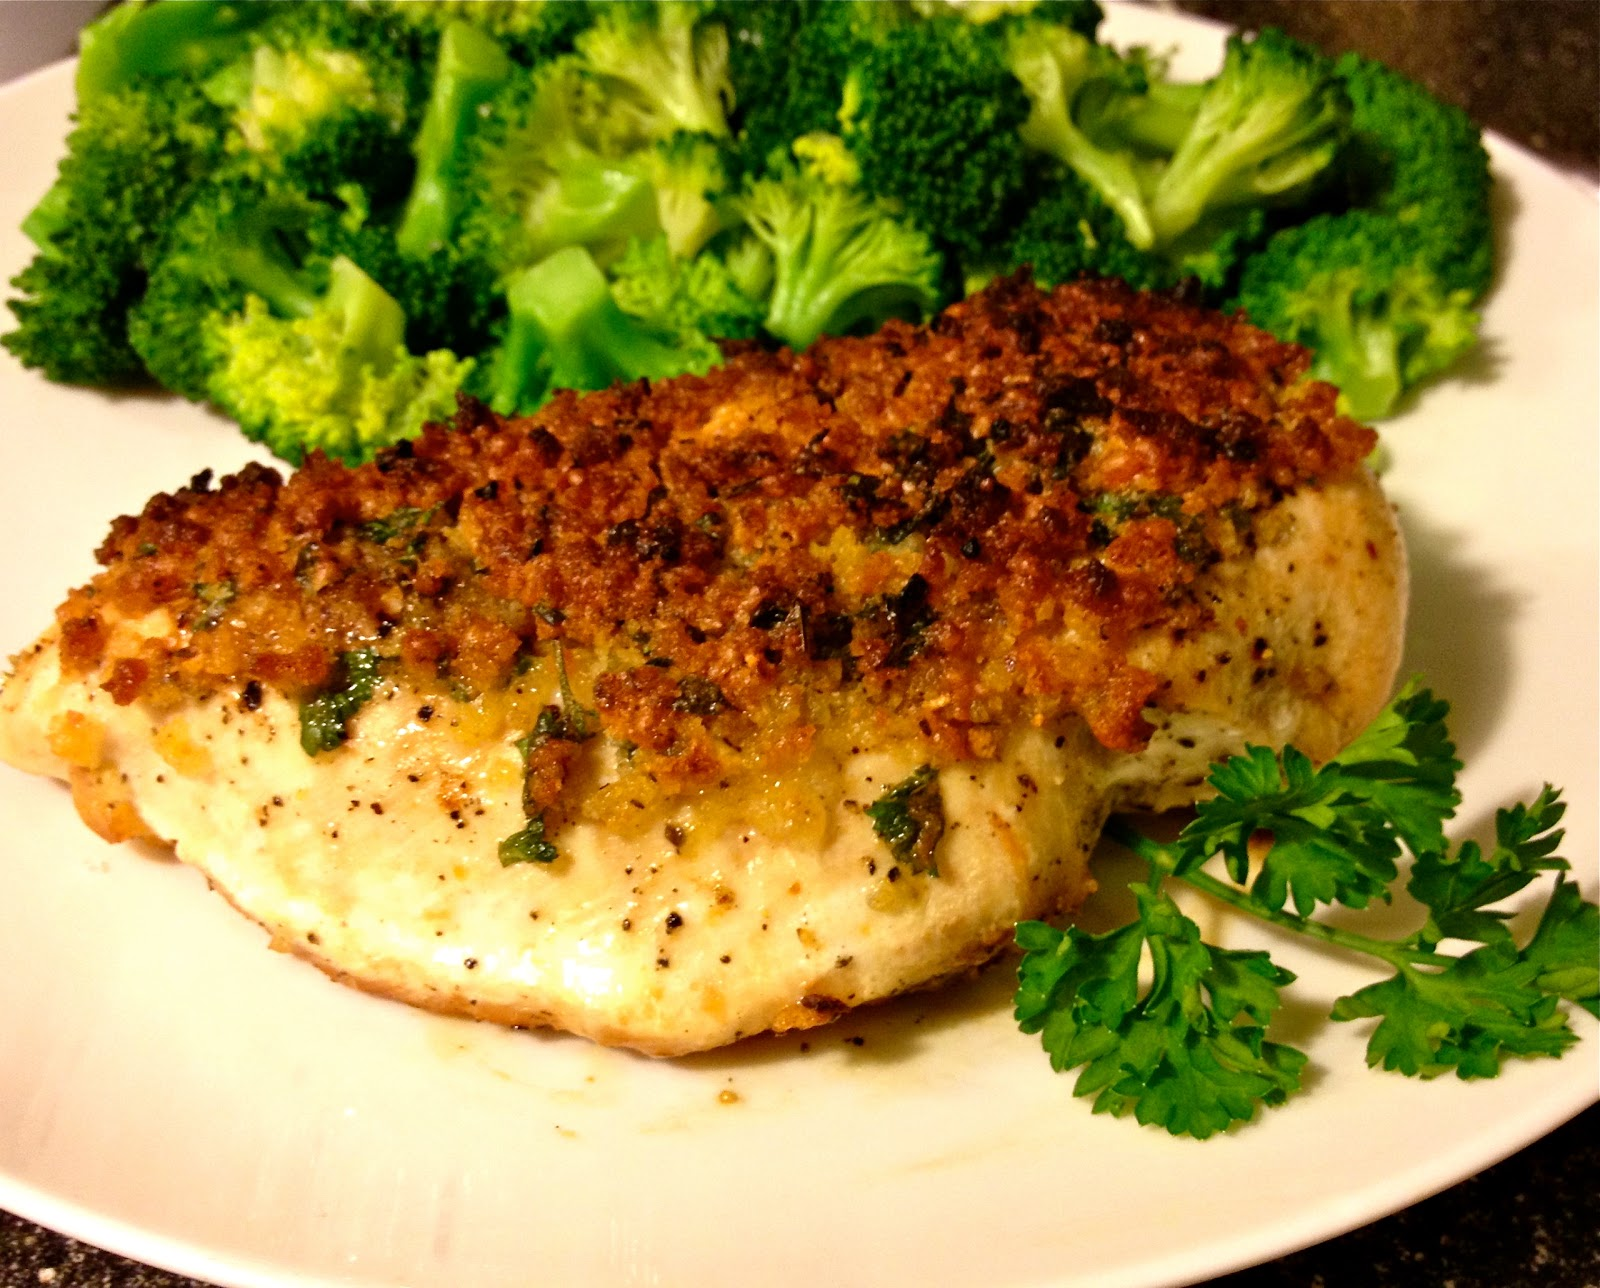 Bon Chappétit: parmesan-crusted chicken